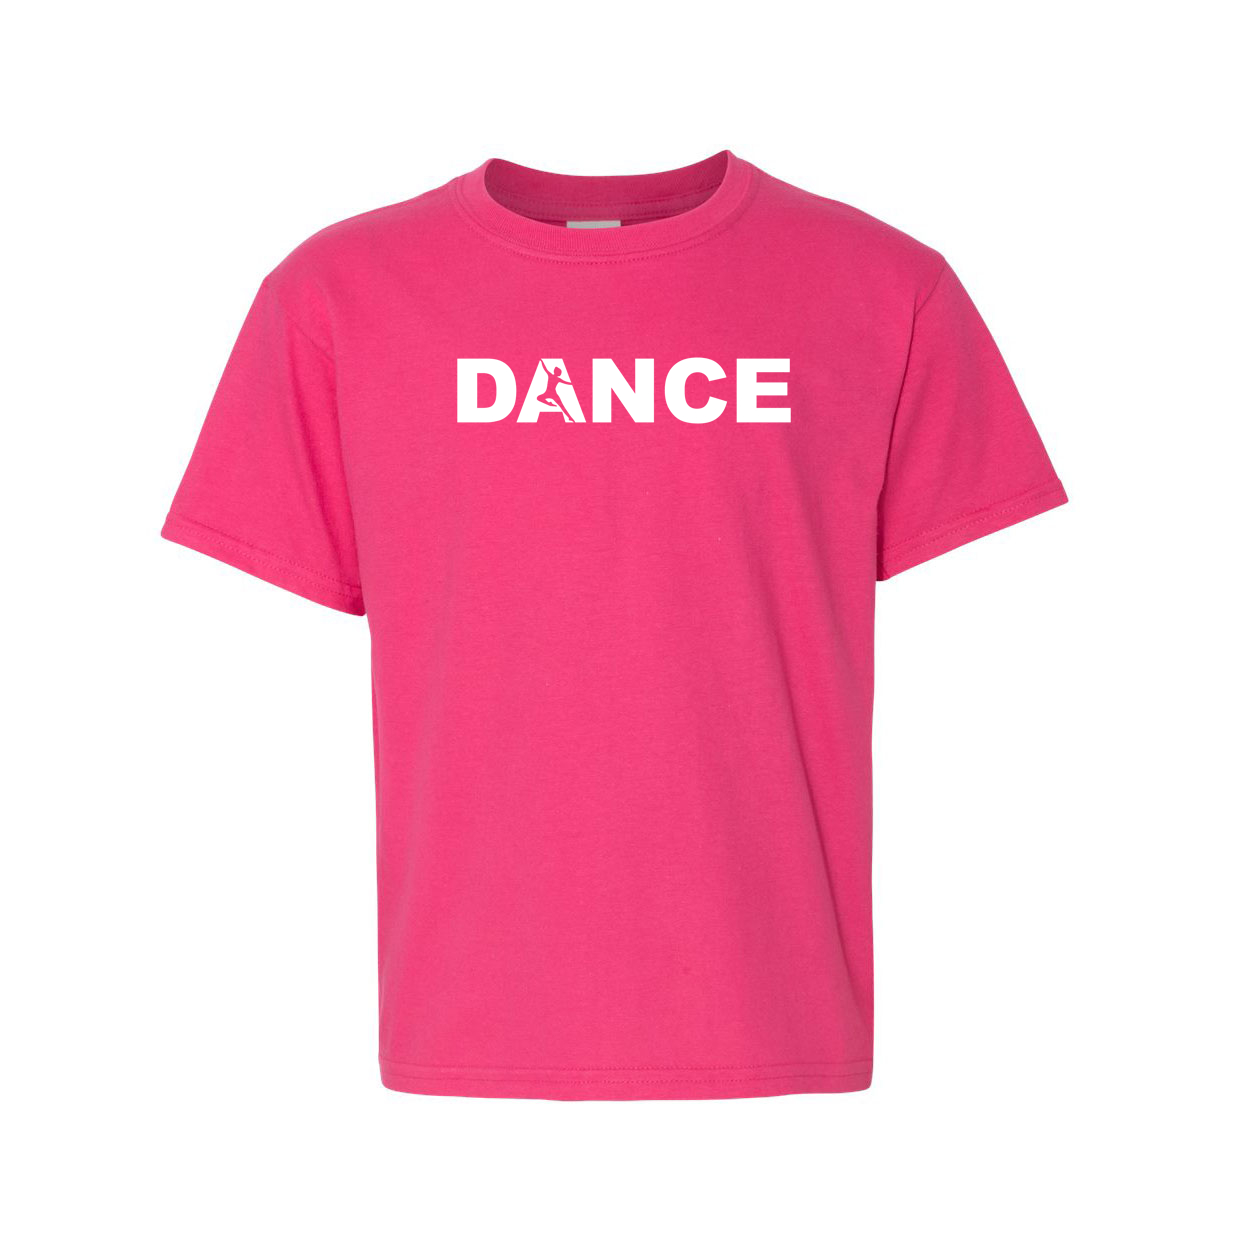 Dance Silhouette Logo Classic Youth T-Shirt Pink (White Logo)